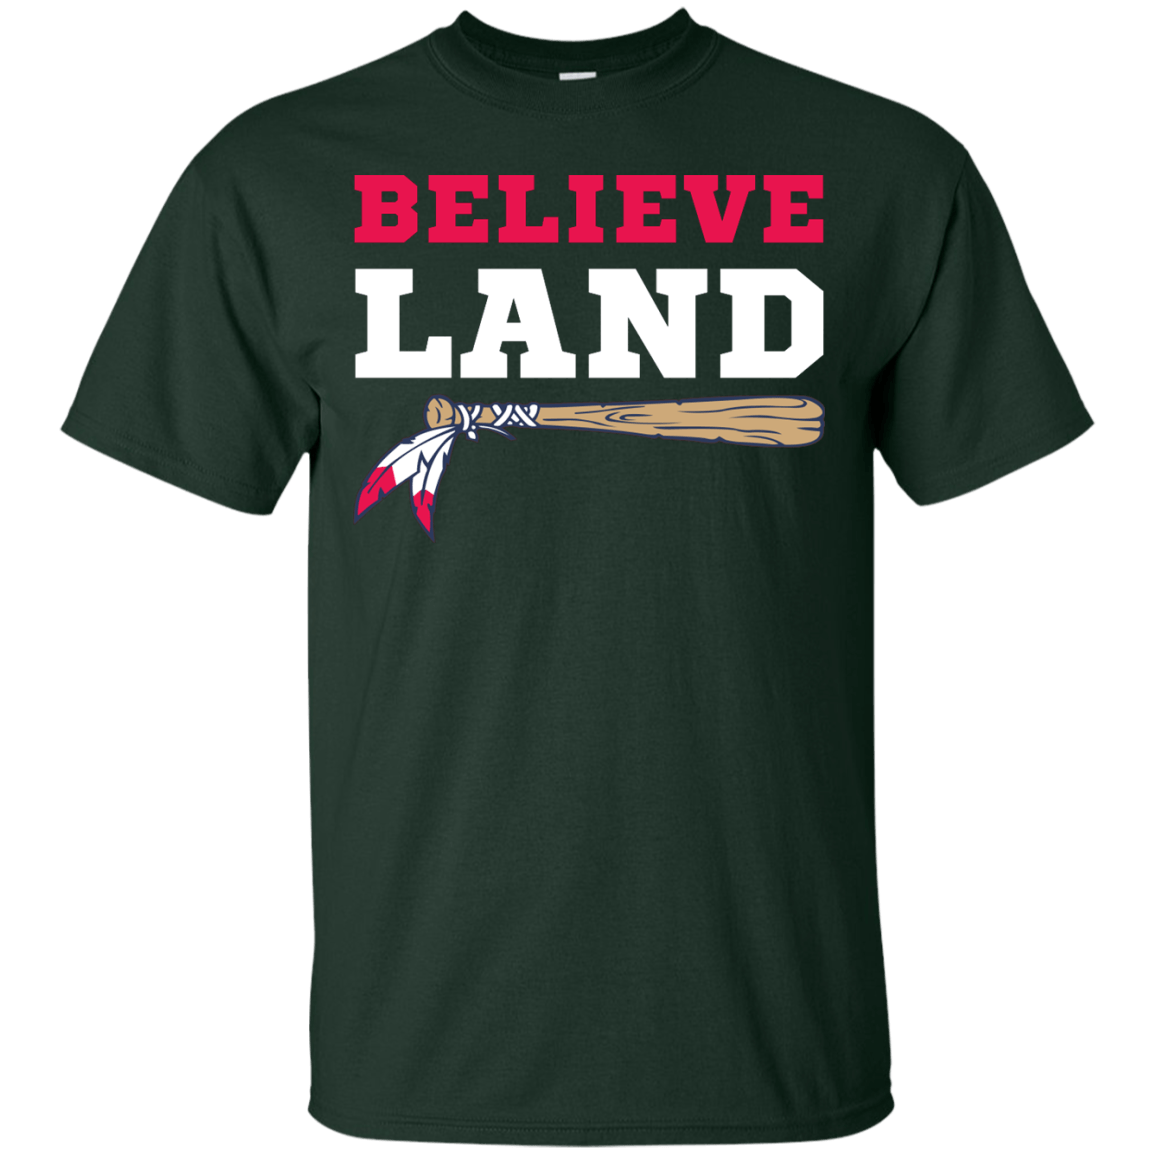 Believe Land Cleveland Baseball T Shirt